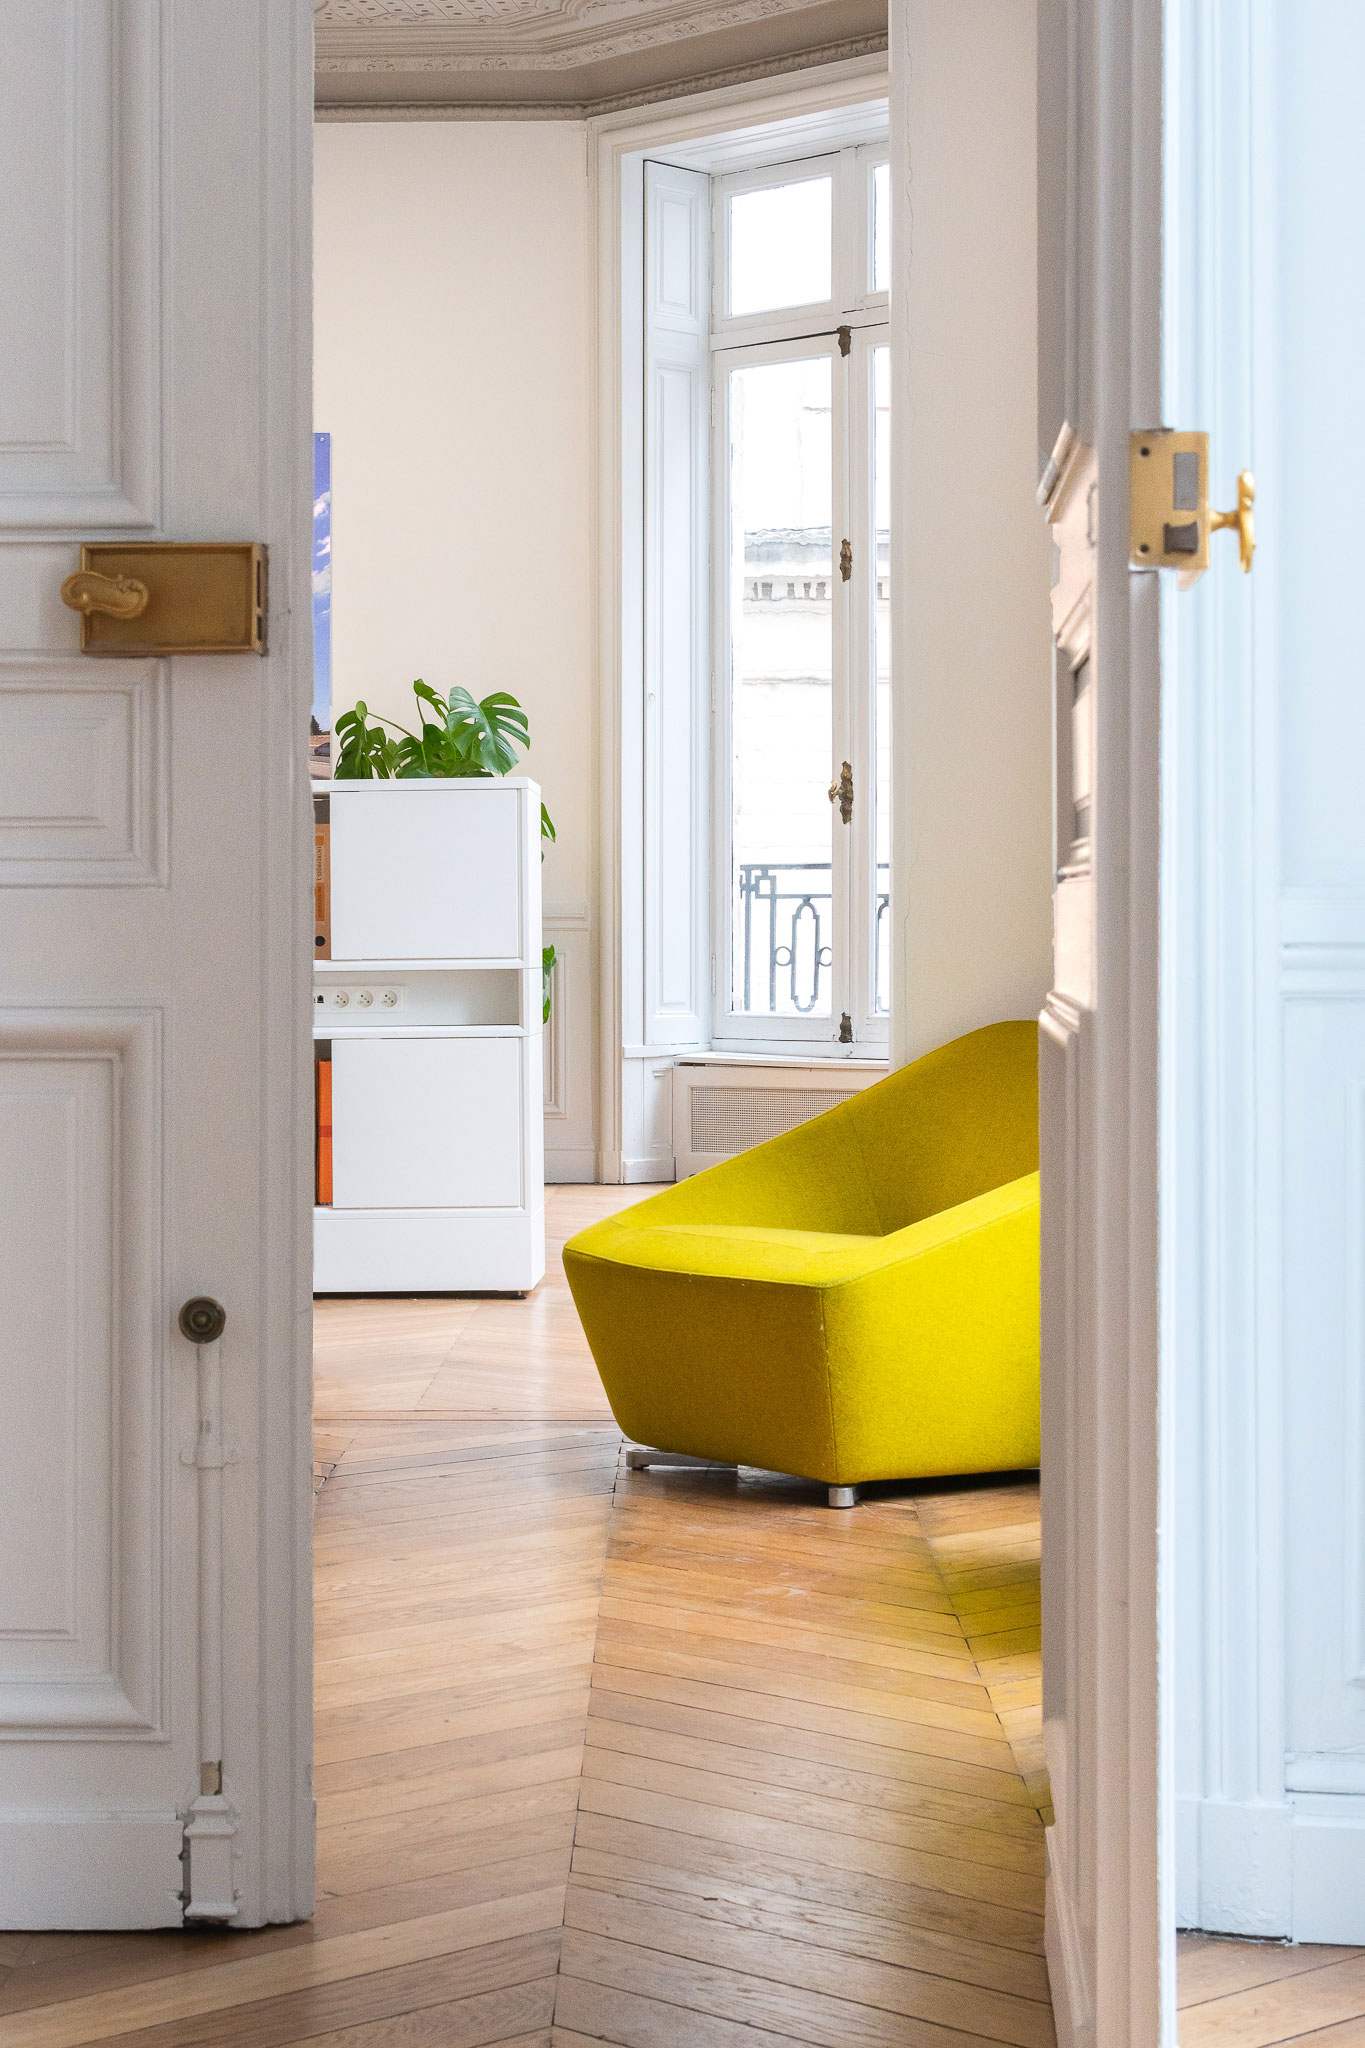 Ambiance - Agence TAUTEM Architecture - Montpellier